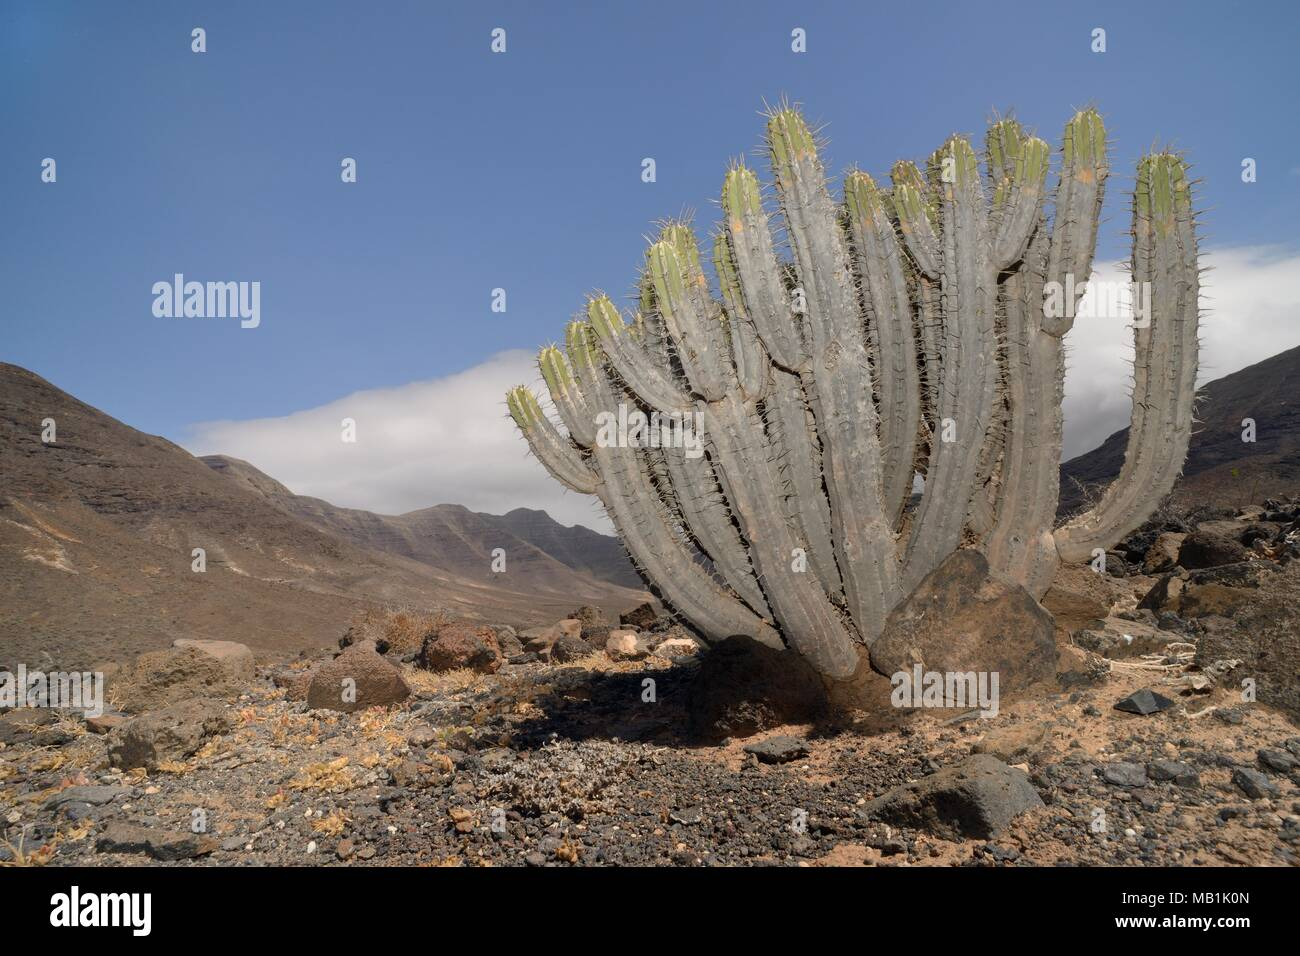 Jandia spurge / Cardon de Jandia (Euphorbia handiensis) a rare Red Data Book listed Fuertventuran endemic plant found only in two valleys in the south - Stock Image